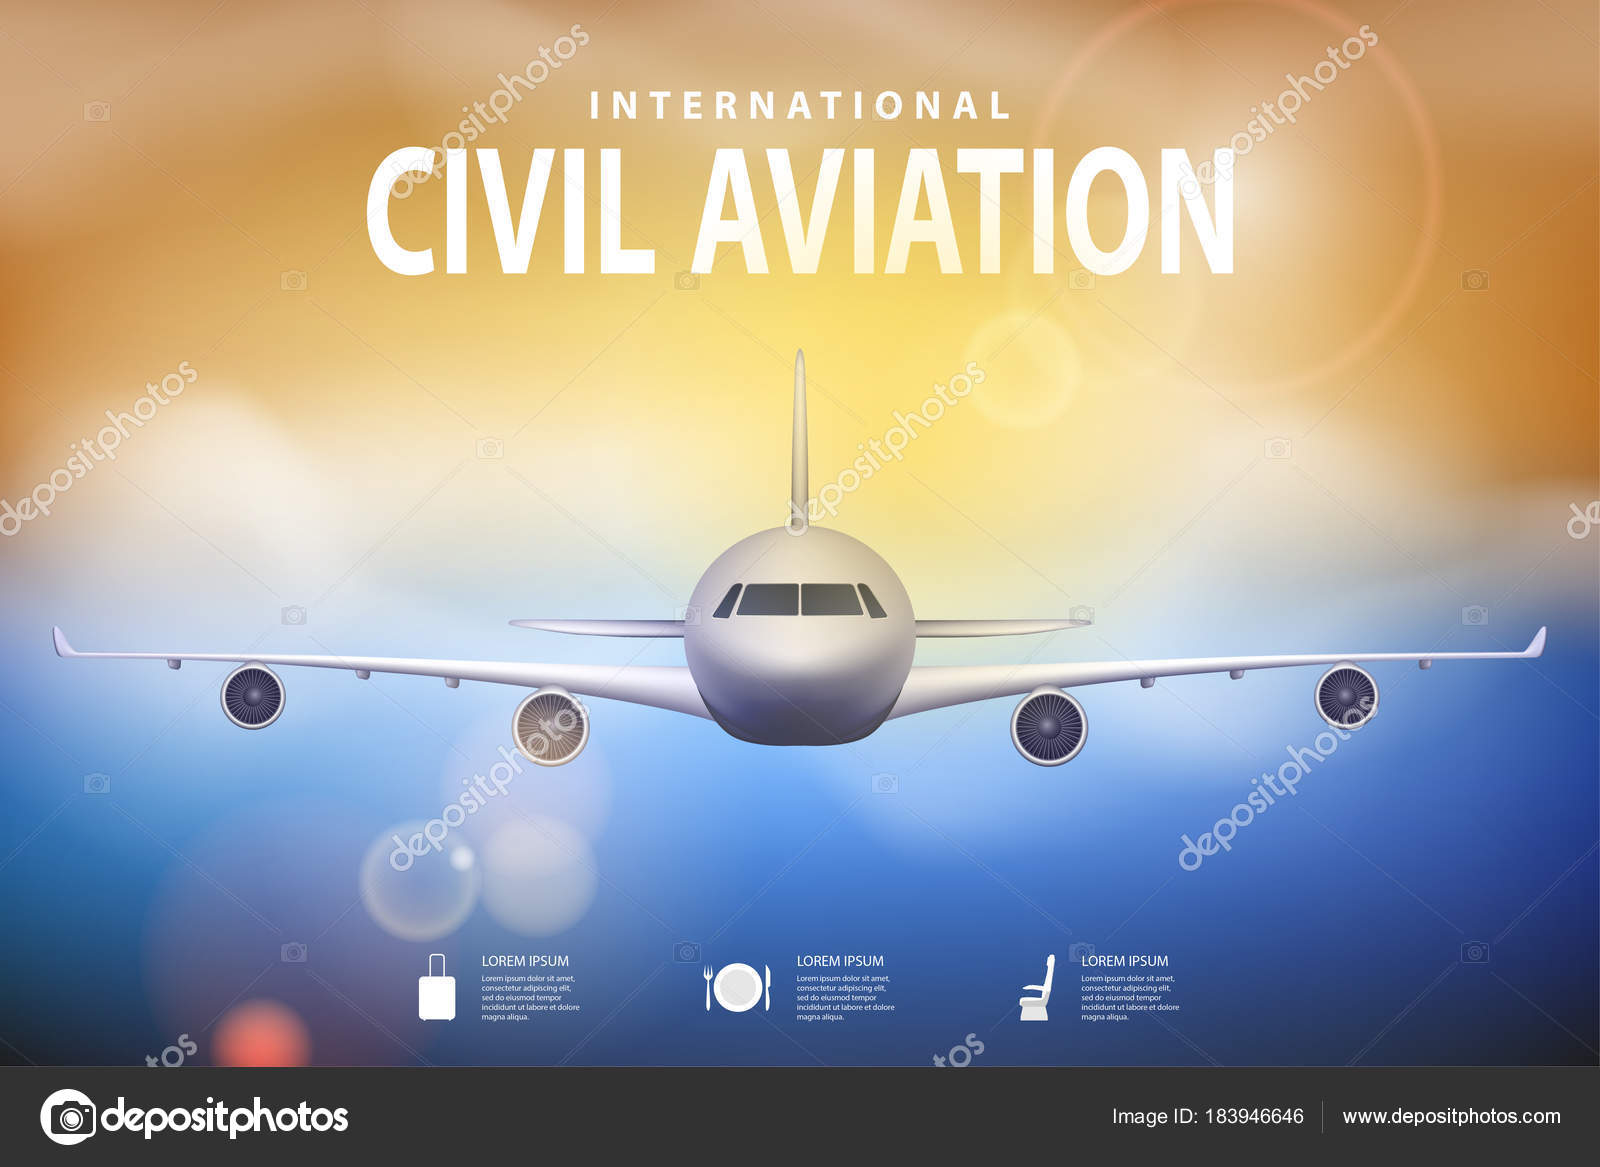 Summer Travel Illustration With Airplane On Blue Sunny Background Brochure In Tourism Theme Agency Advertisement Poster Design